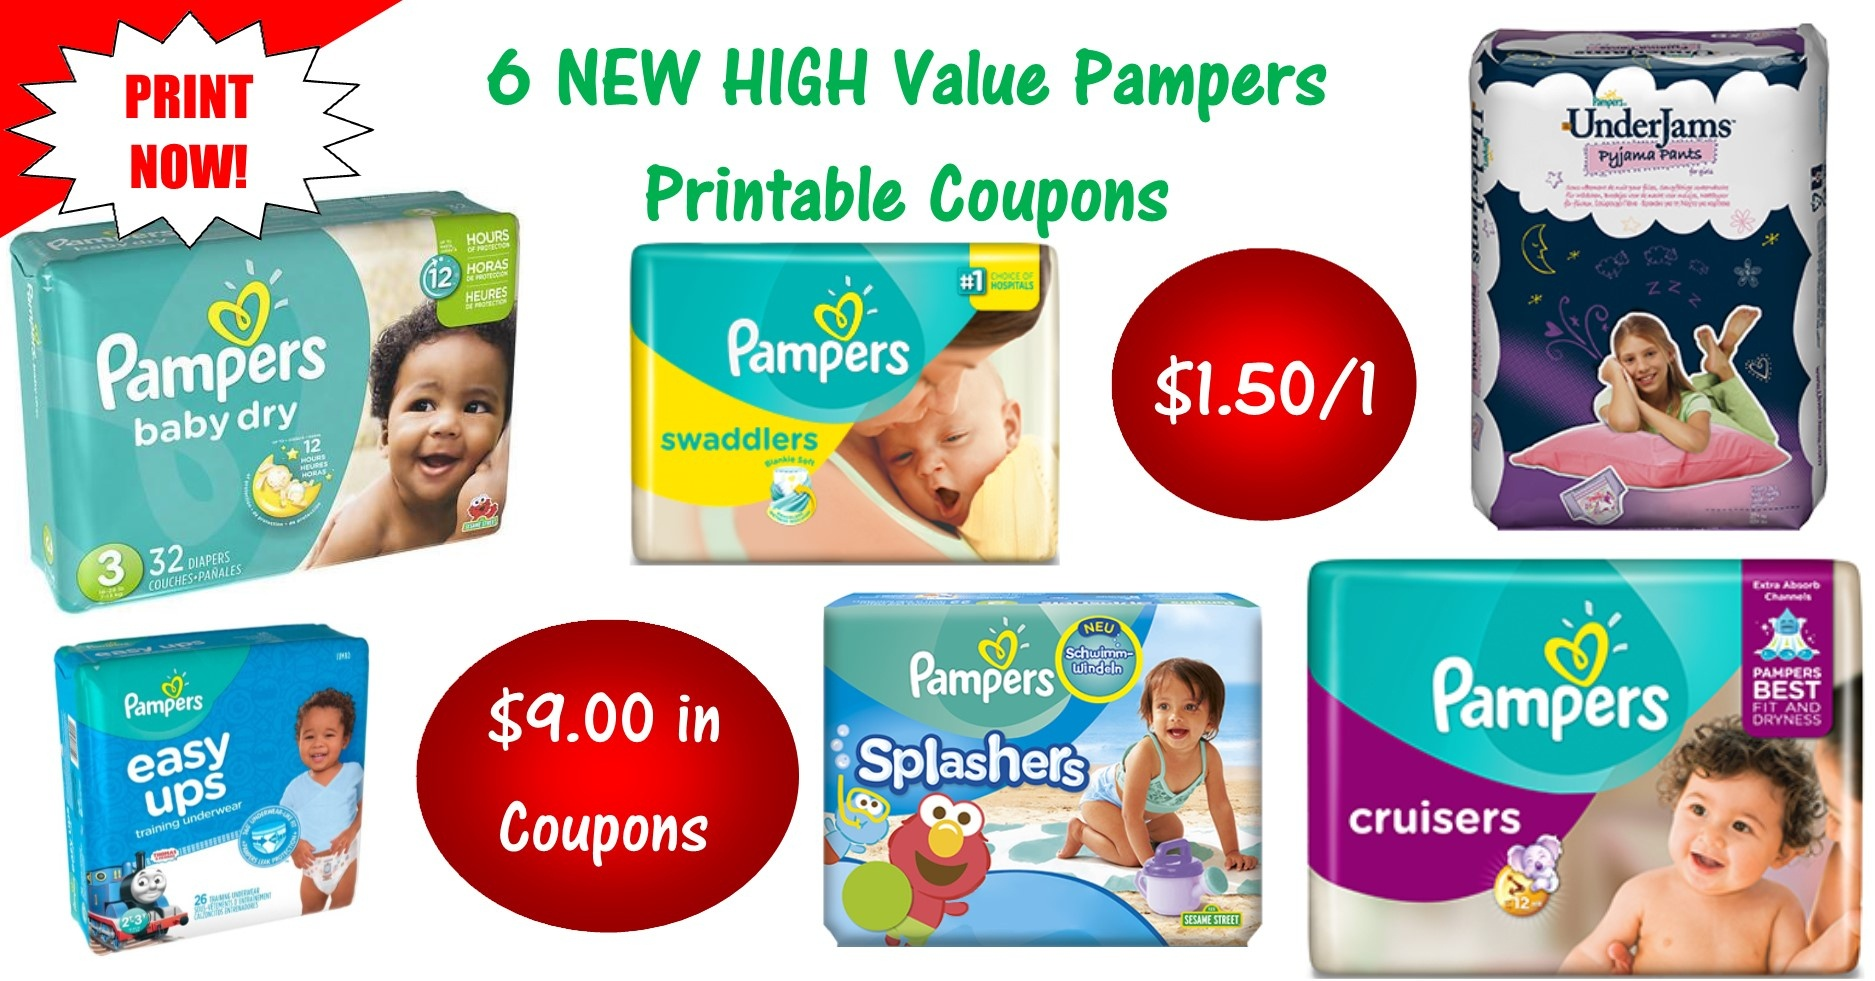 6 Pampers Printable Coupons ~ Print Now! $9 In Savings! - Free Printable Coupons For Baby Diapers